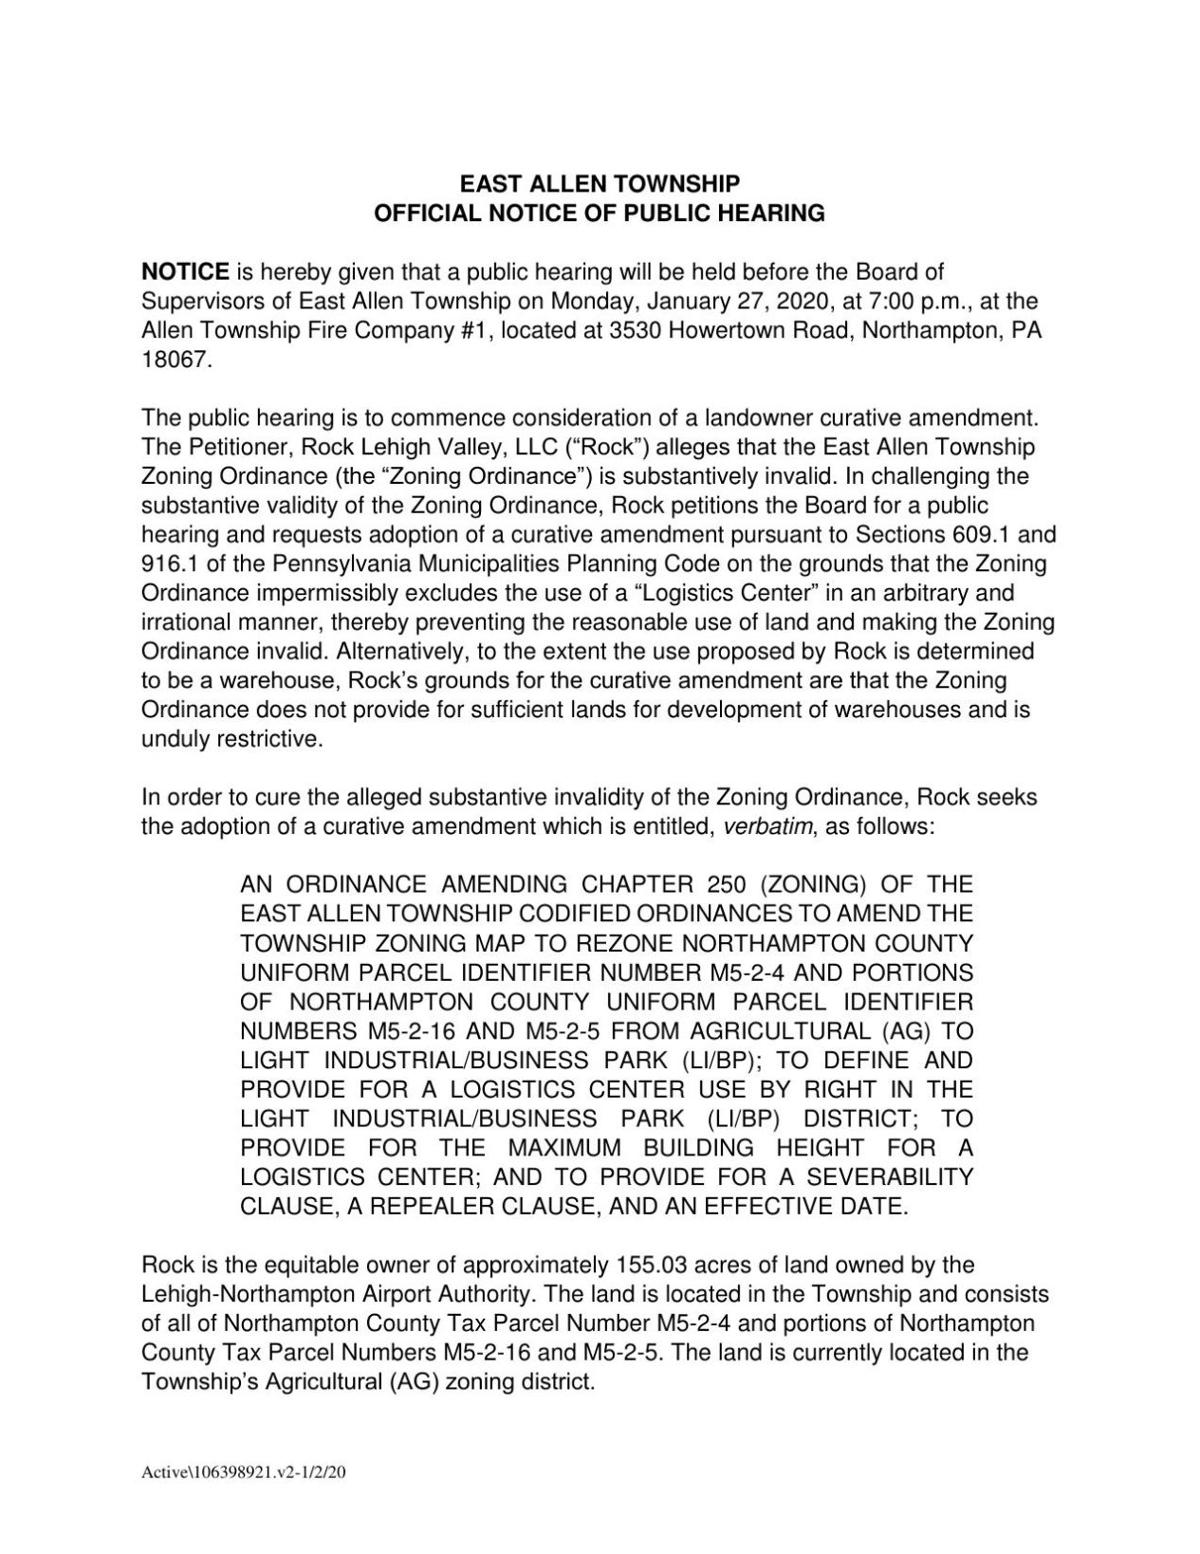 Official notice of public hearing on curative amendment